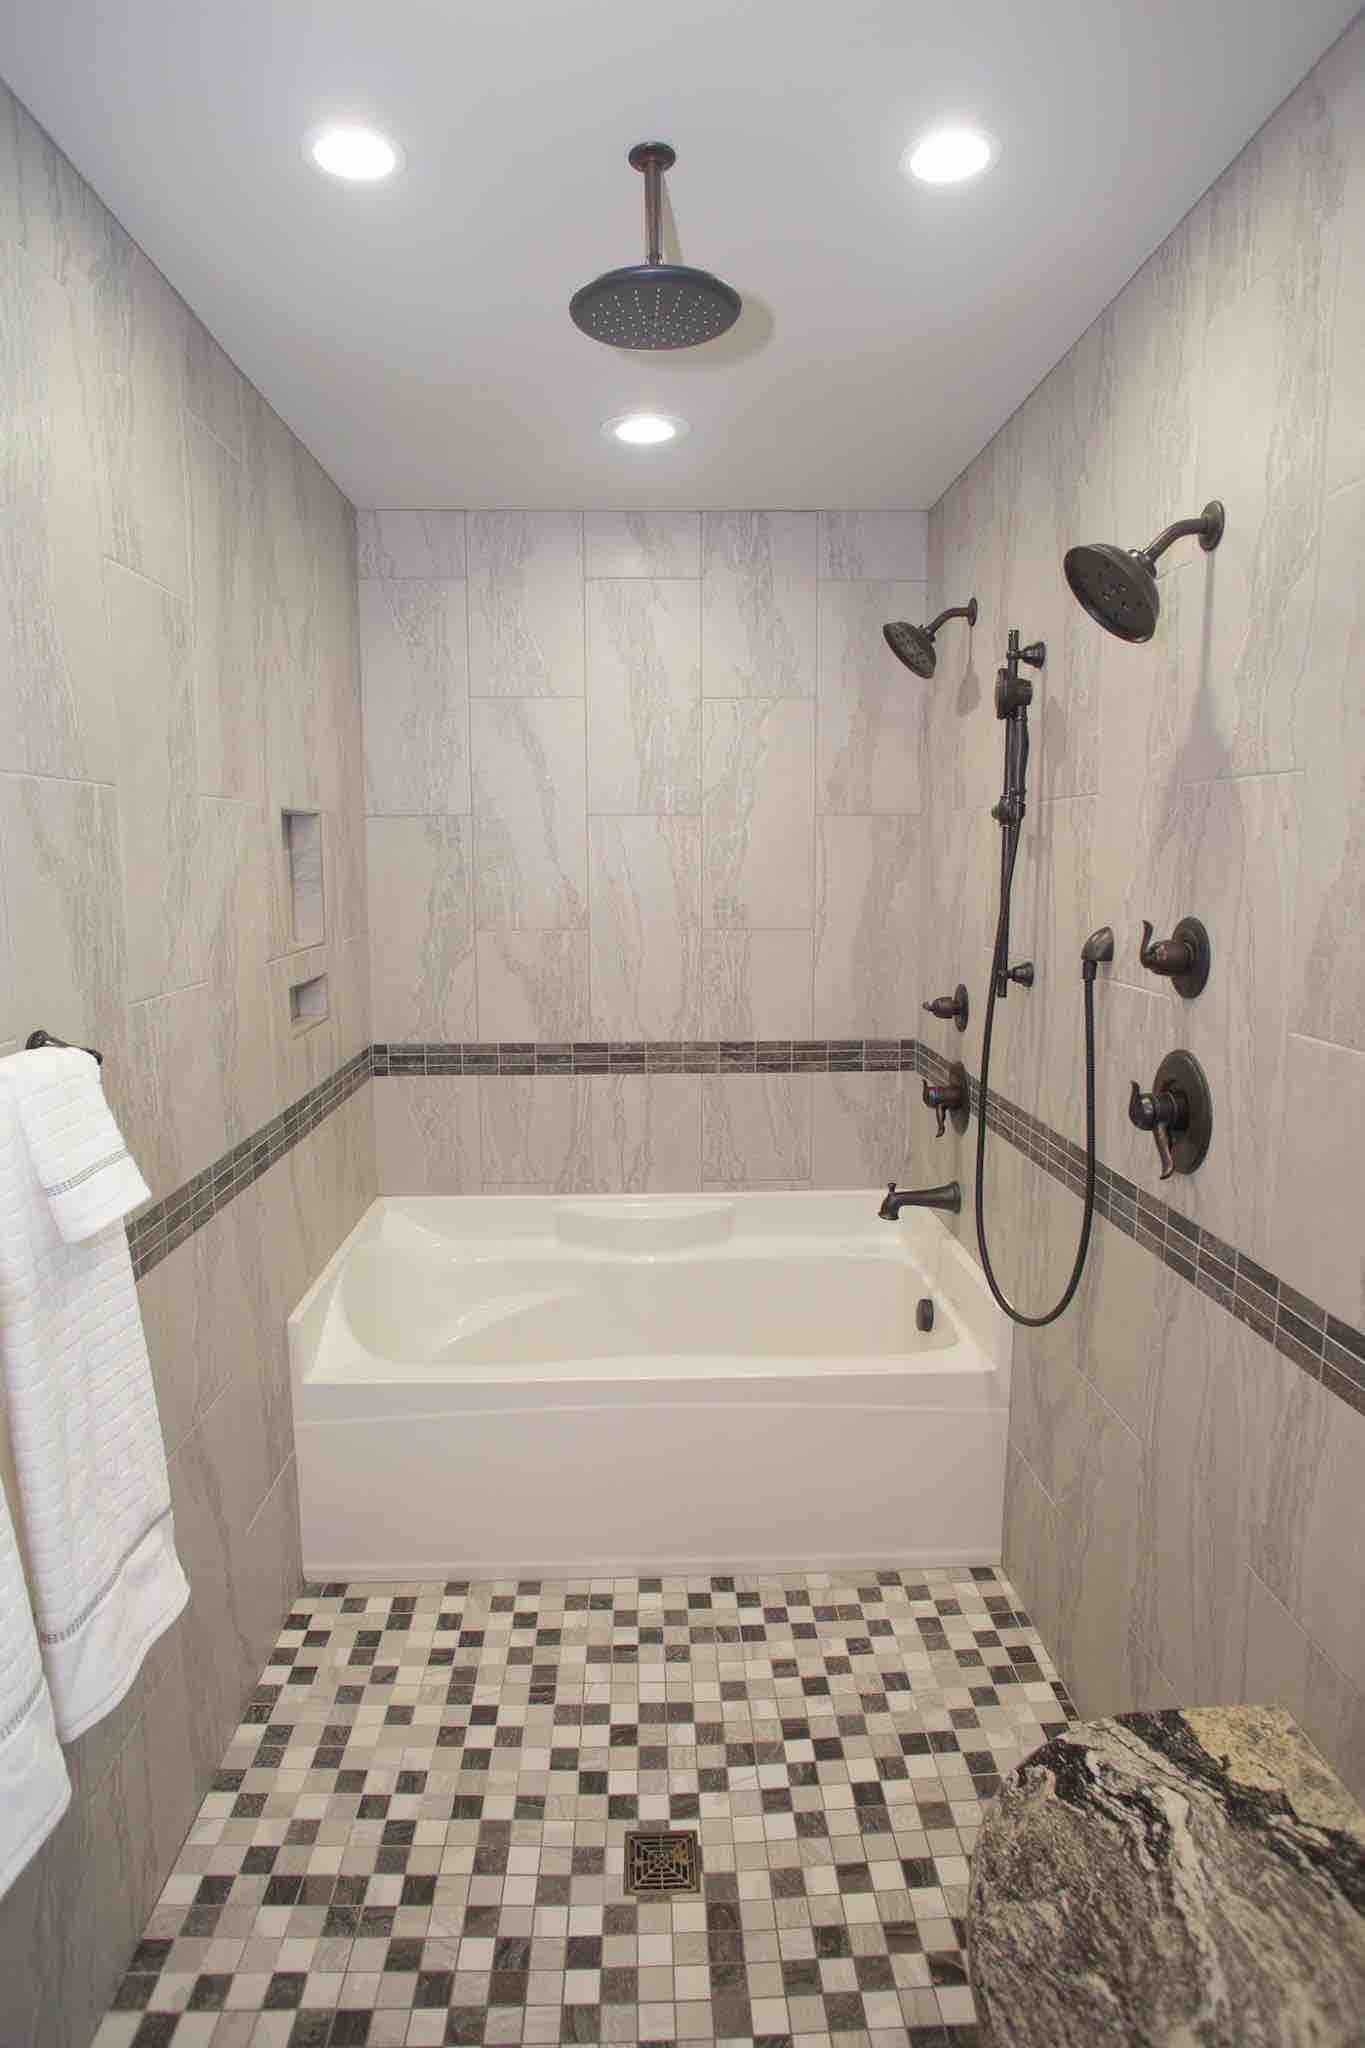 180 Spaces | Interior Design Turnarounds - Master Bath remodel featuring tub inside the doorless shower!  Great for doggy bath time!